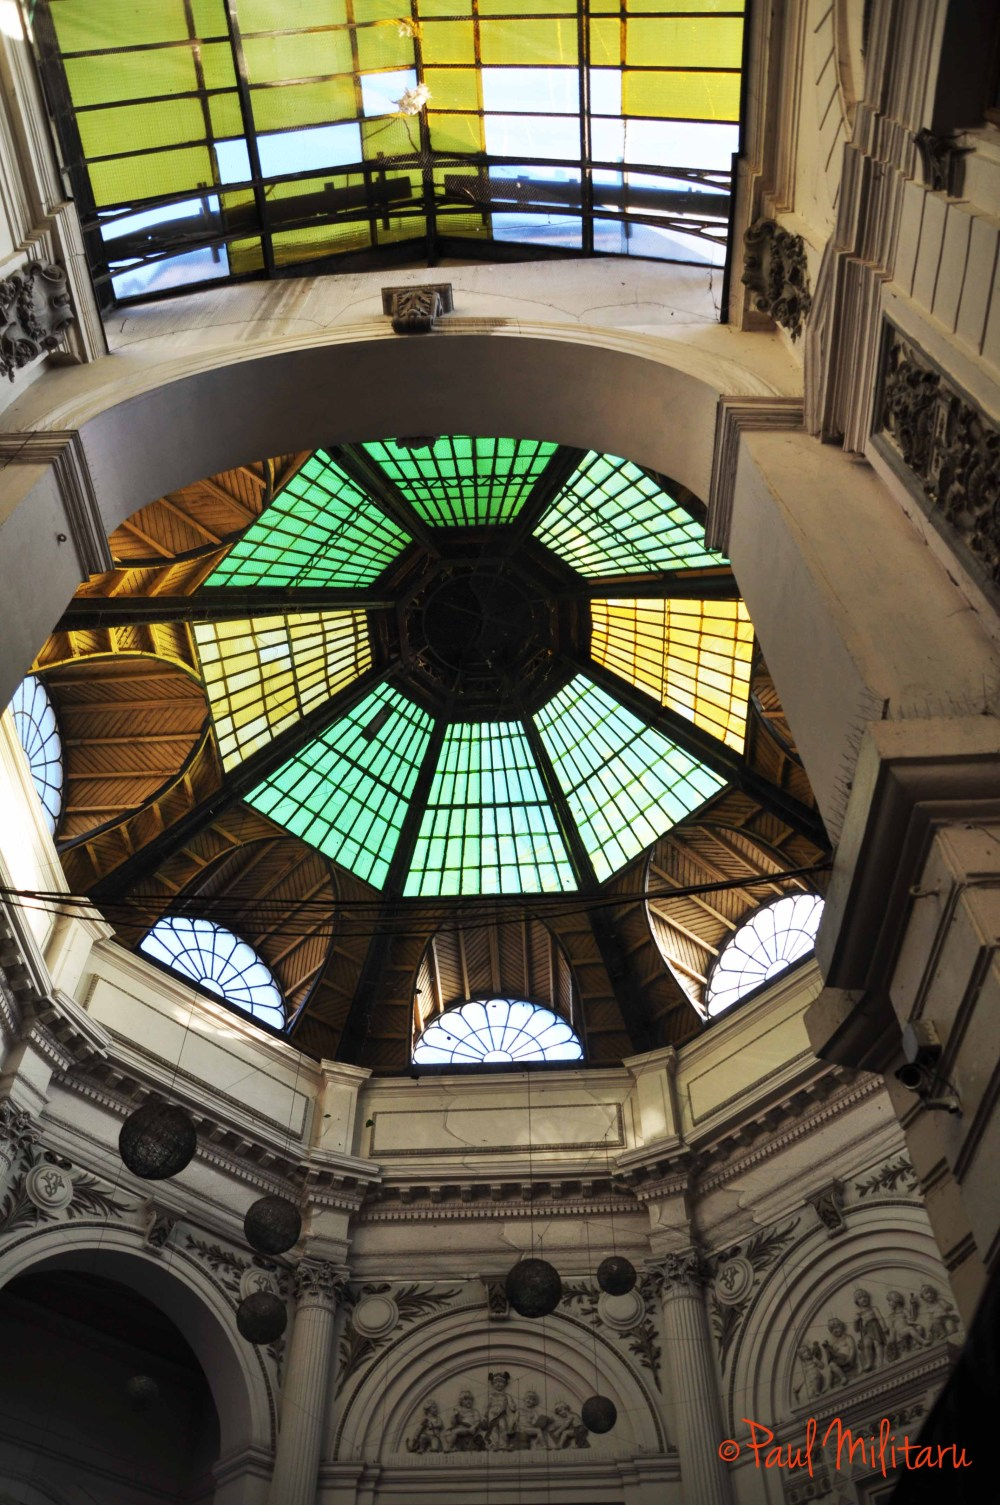 the dome of the French passage